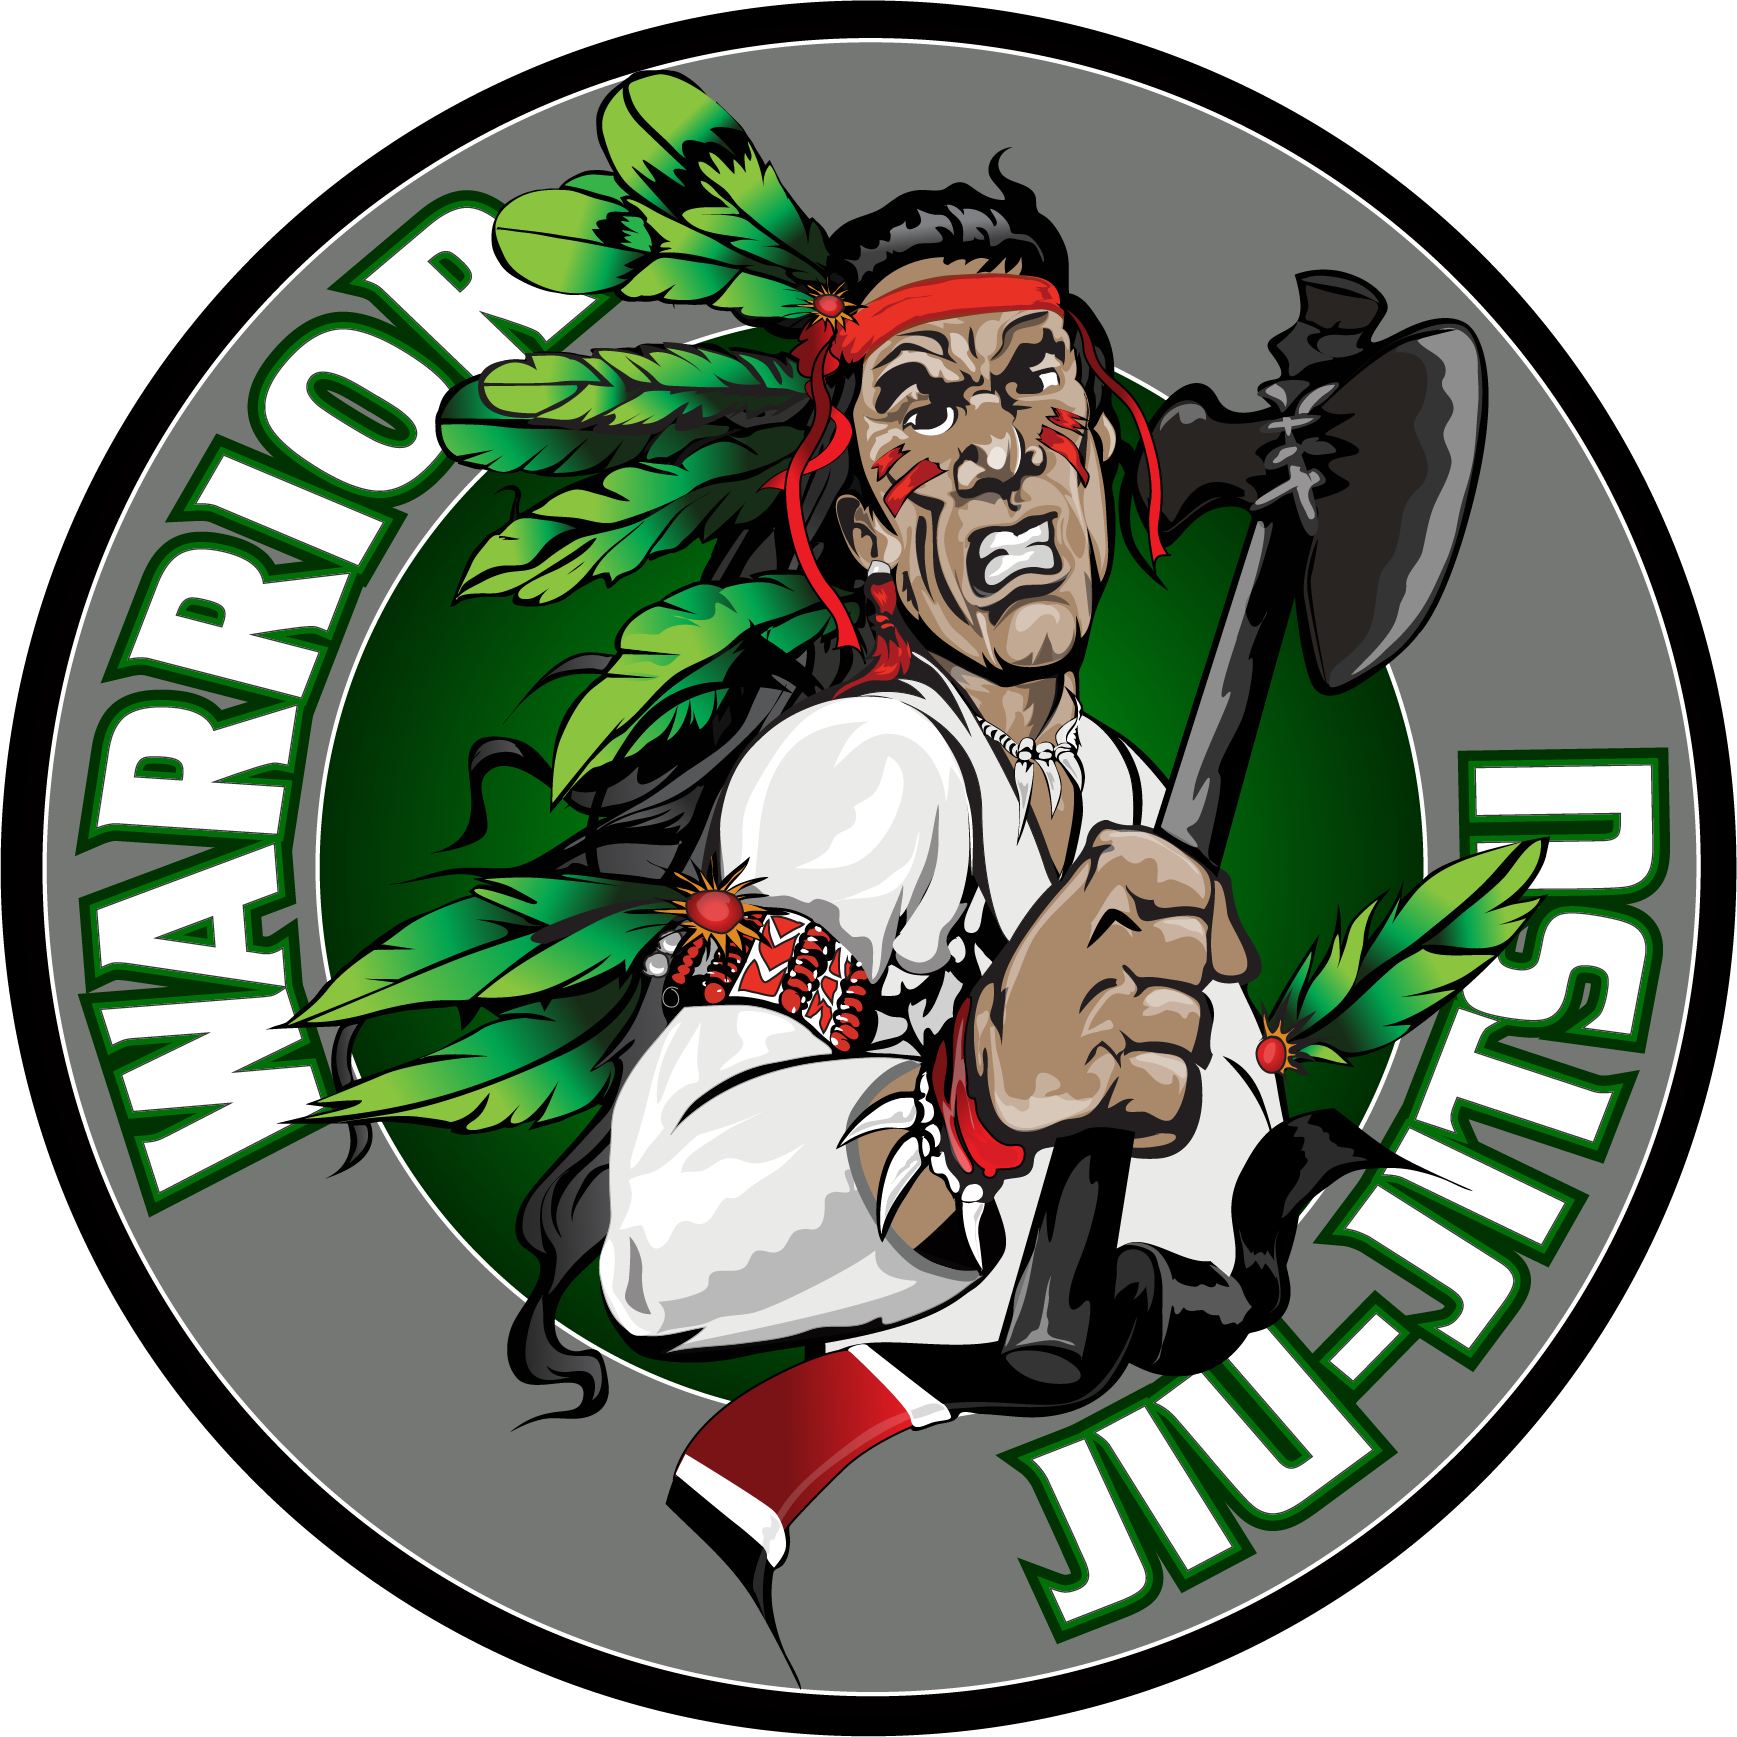 Warrior_Jiu-Jiutsu-GREY.png